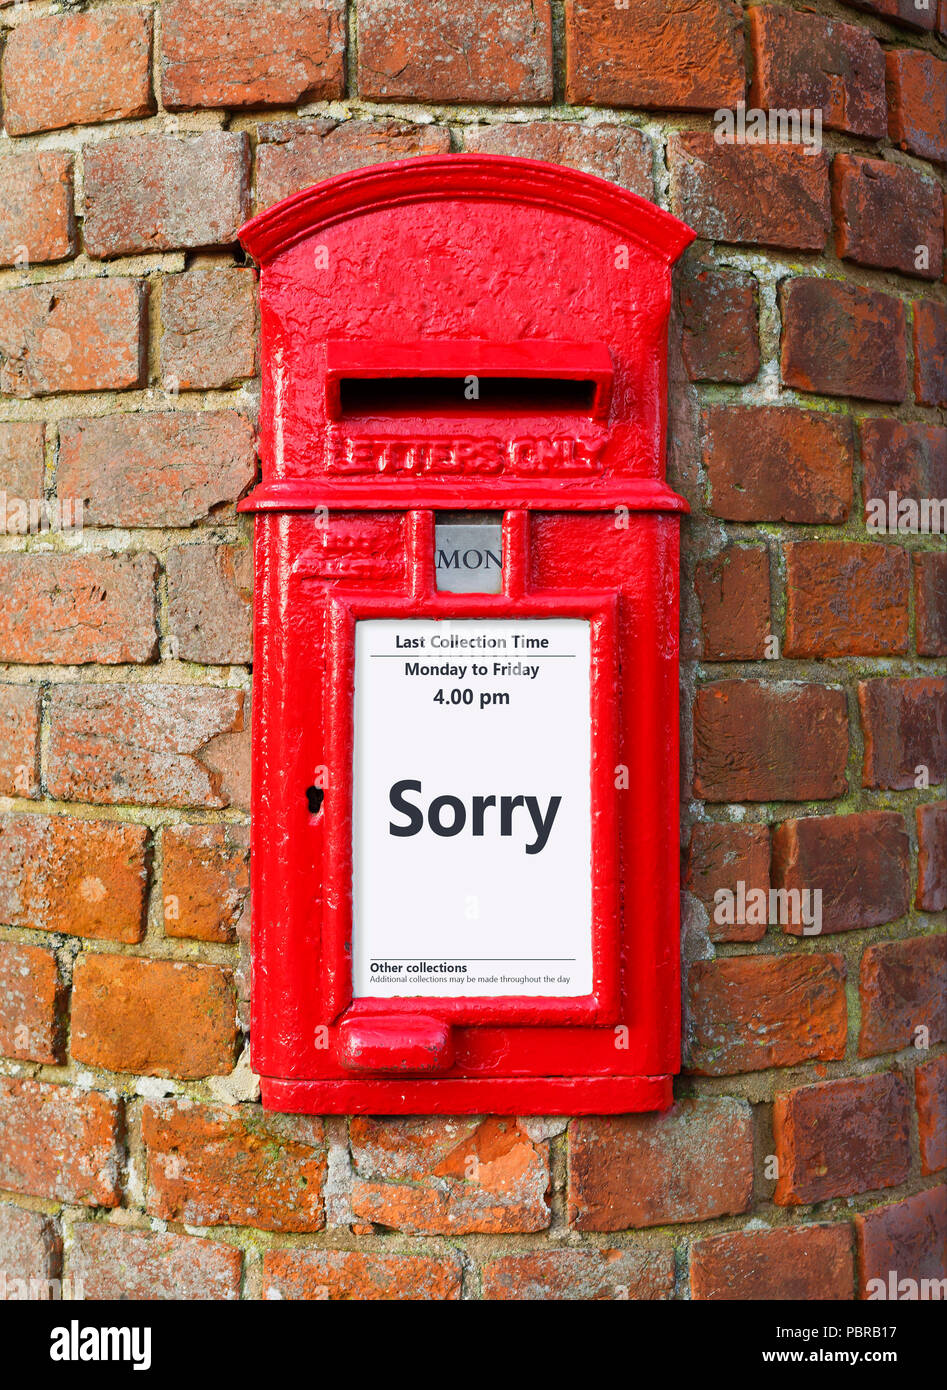 British post box with a message that reads Sorry, ideal for a greeting card design - Stock Image